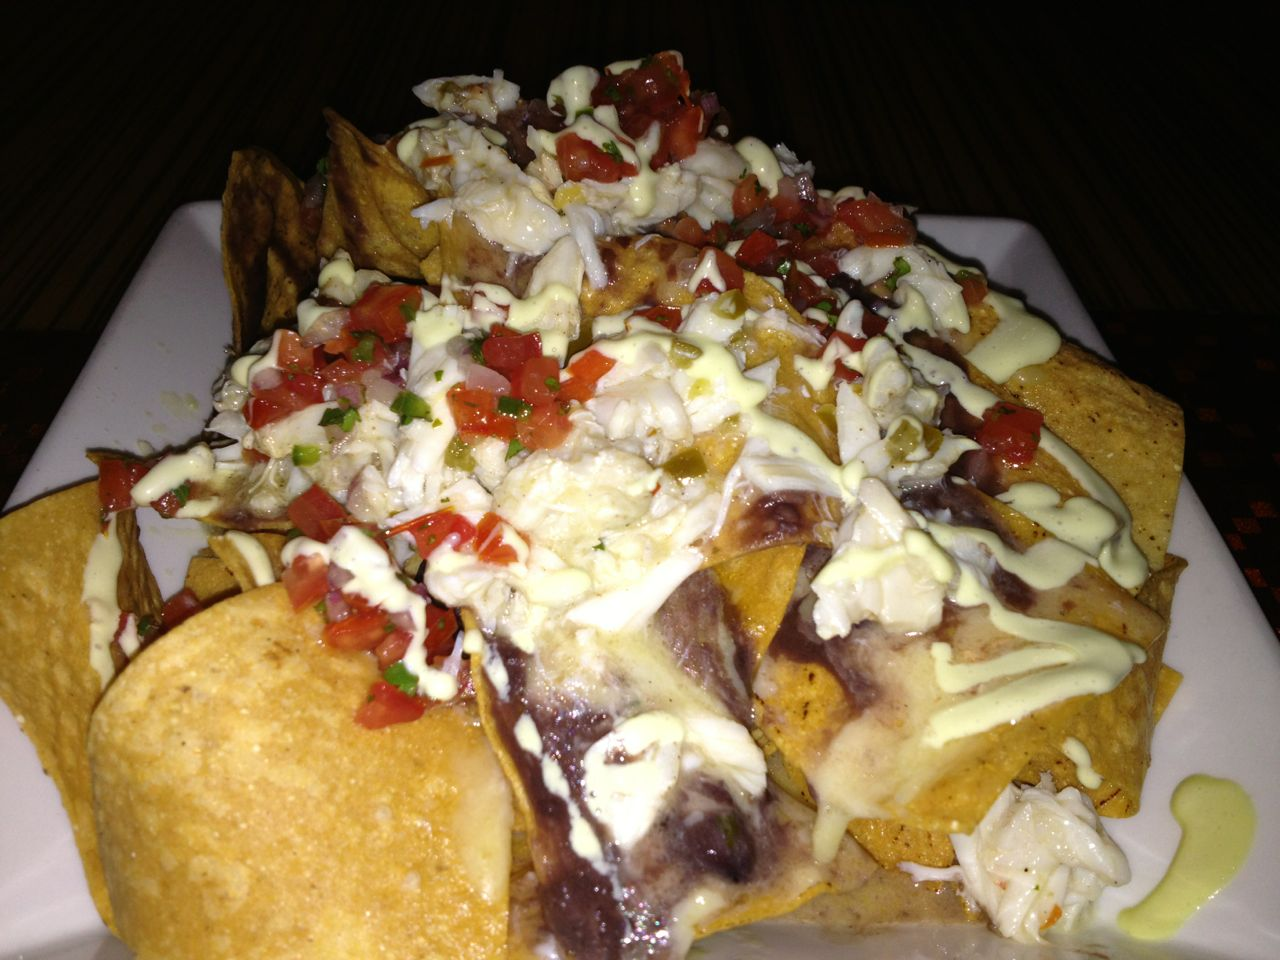 Crab nachos from bluezoo... very happy they're staying (we heard there'd be a rampage if they left :)) - sorry for quality of photo, originally for tweeting not posting